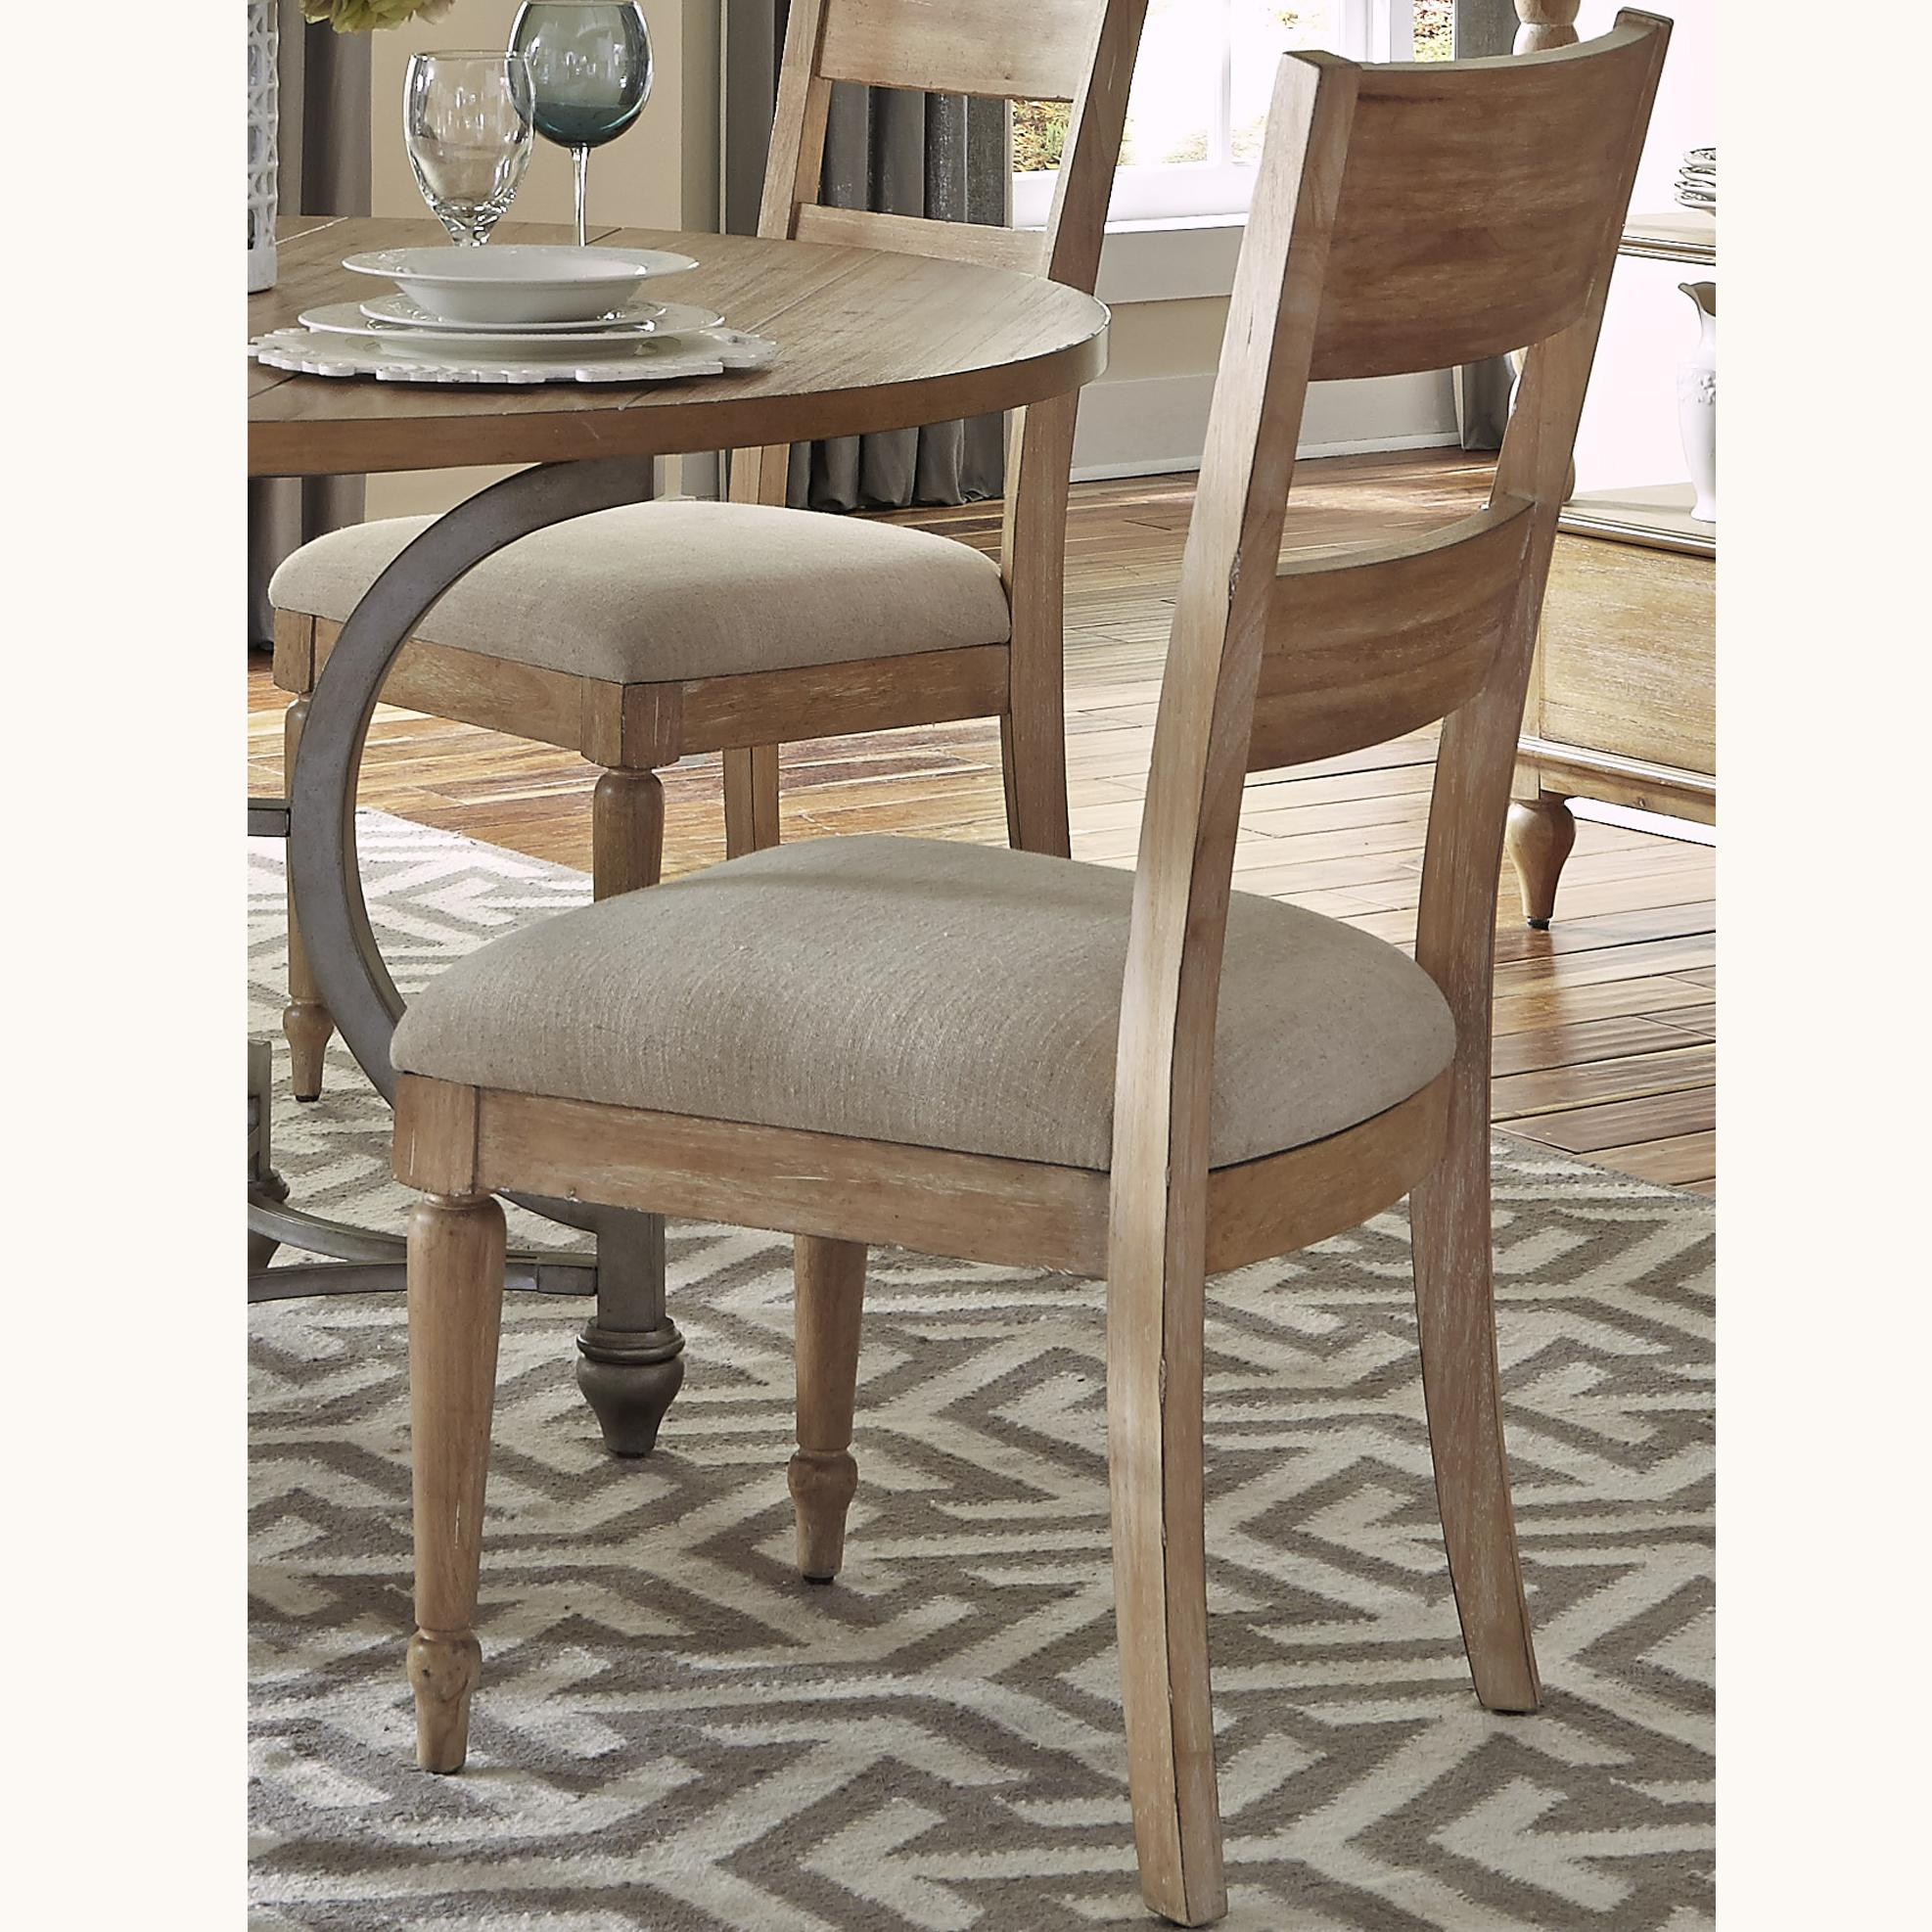 liberty dining chairs detroit tigers chair furniture harbor view 531 c1501 side